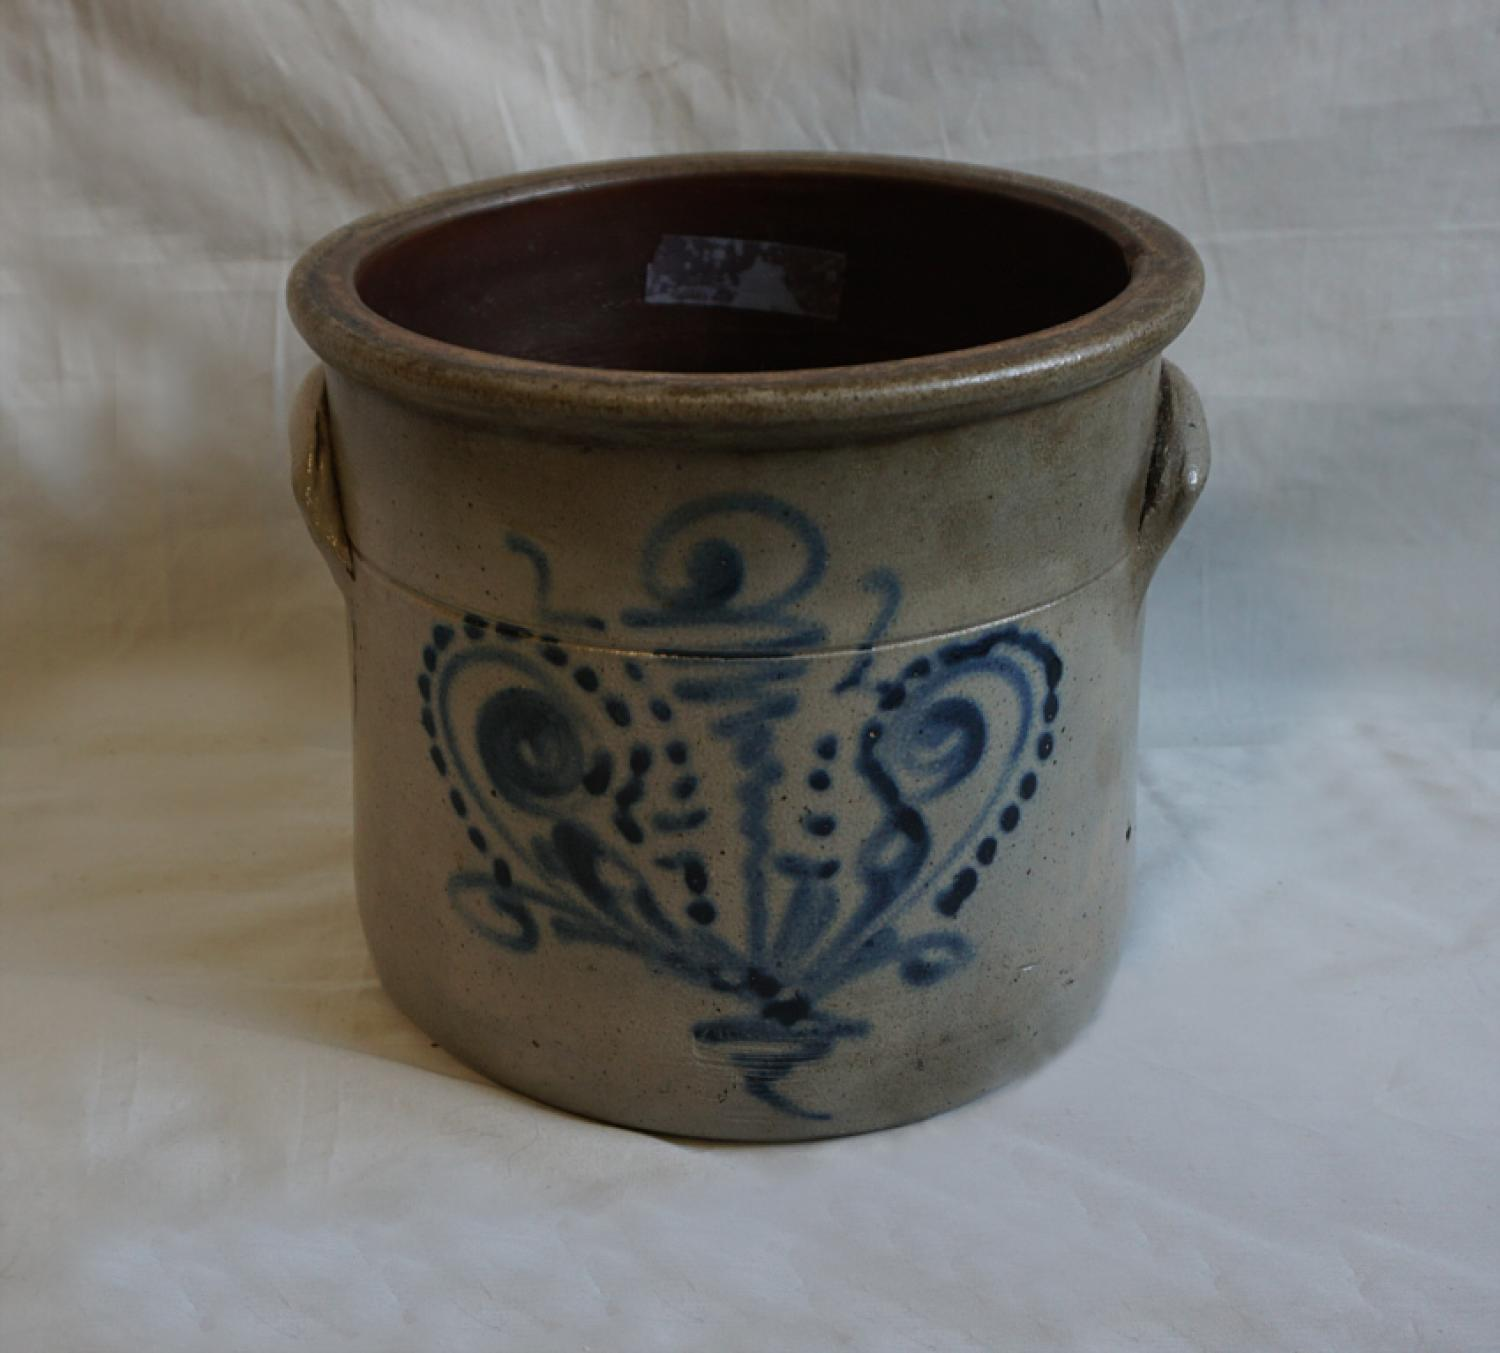 19thc antique American stoneware crock with cobalt blue design